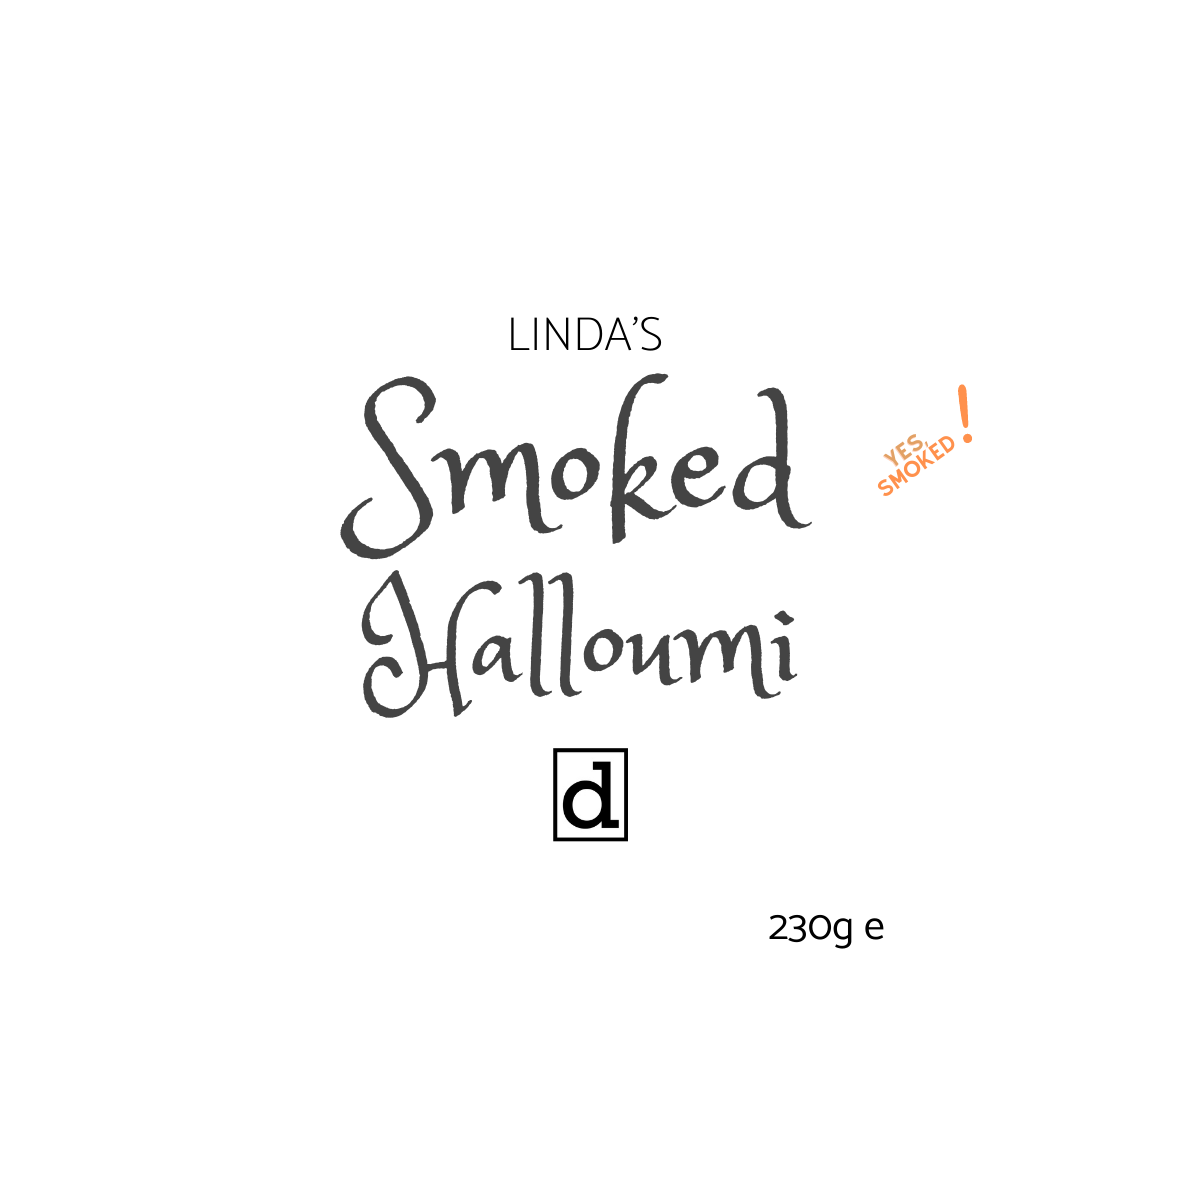 a label that reads Linda's Smoked Halloumi